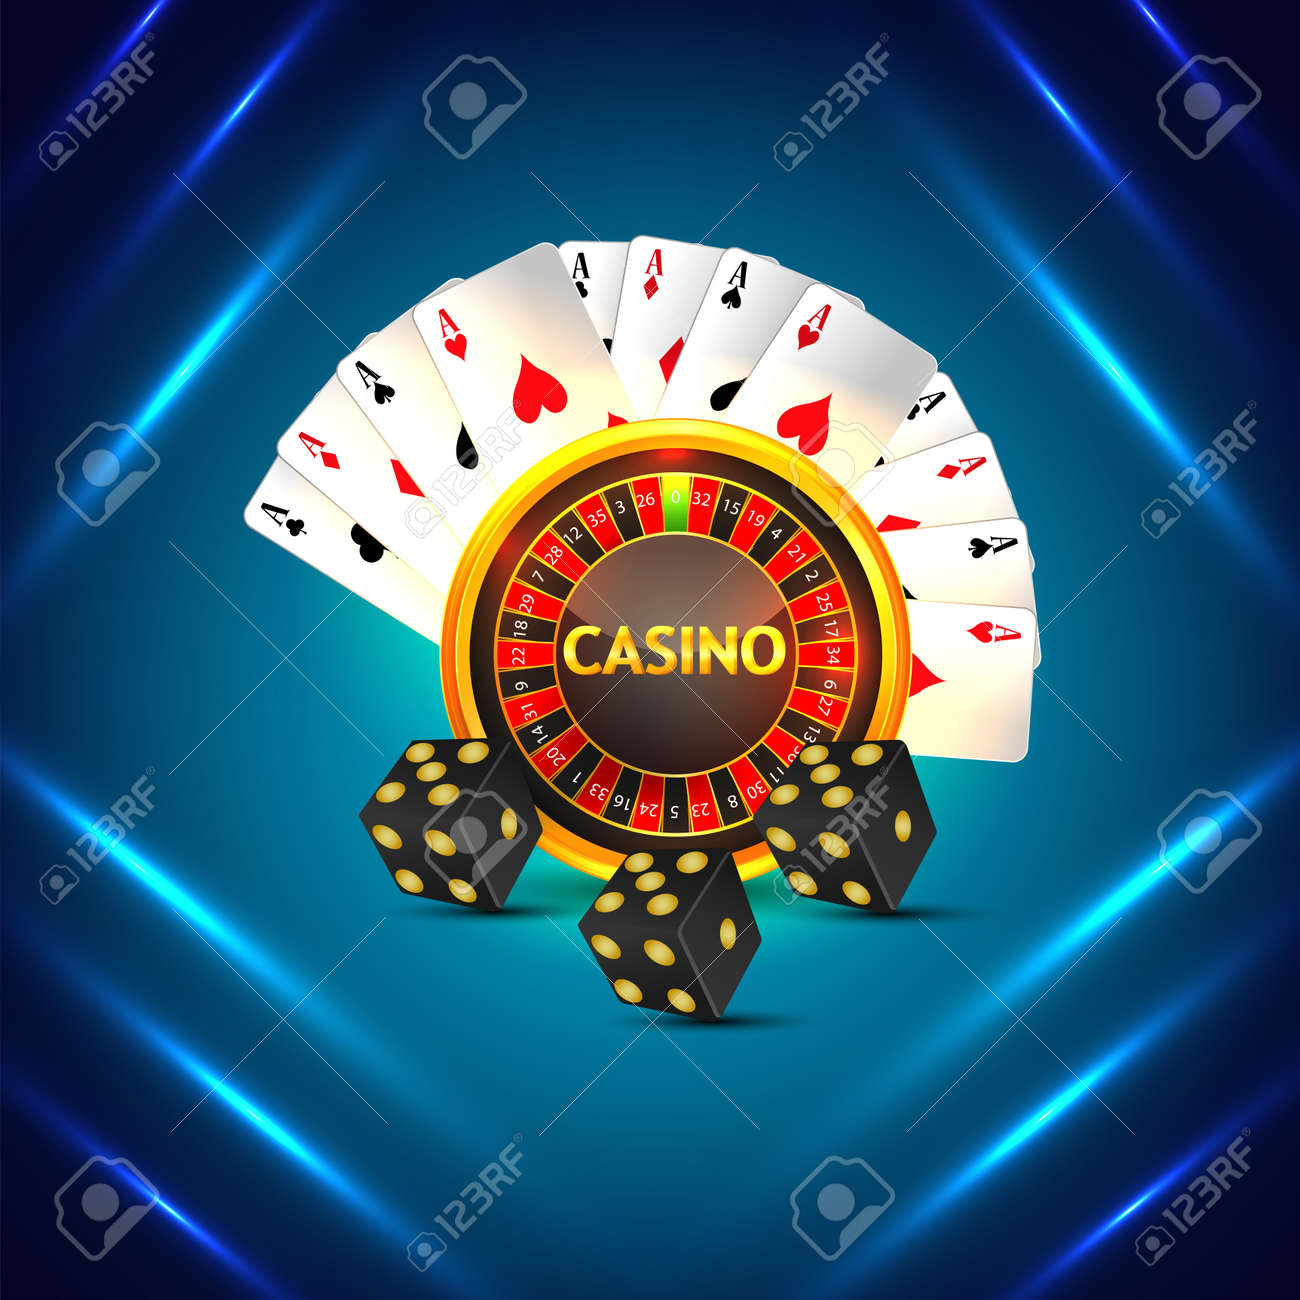 Casino online background with roulette wheel and playing cards - 168720099